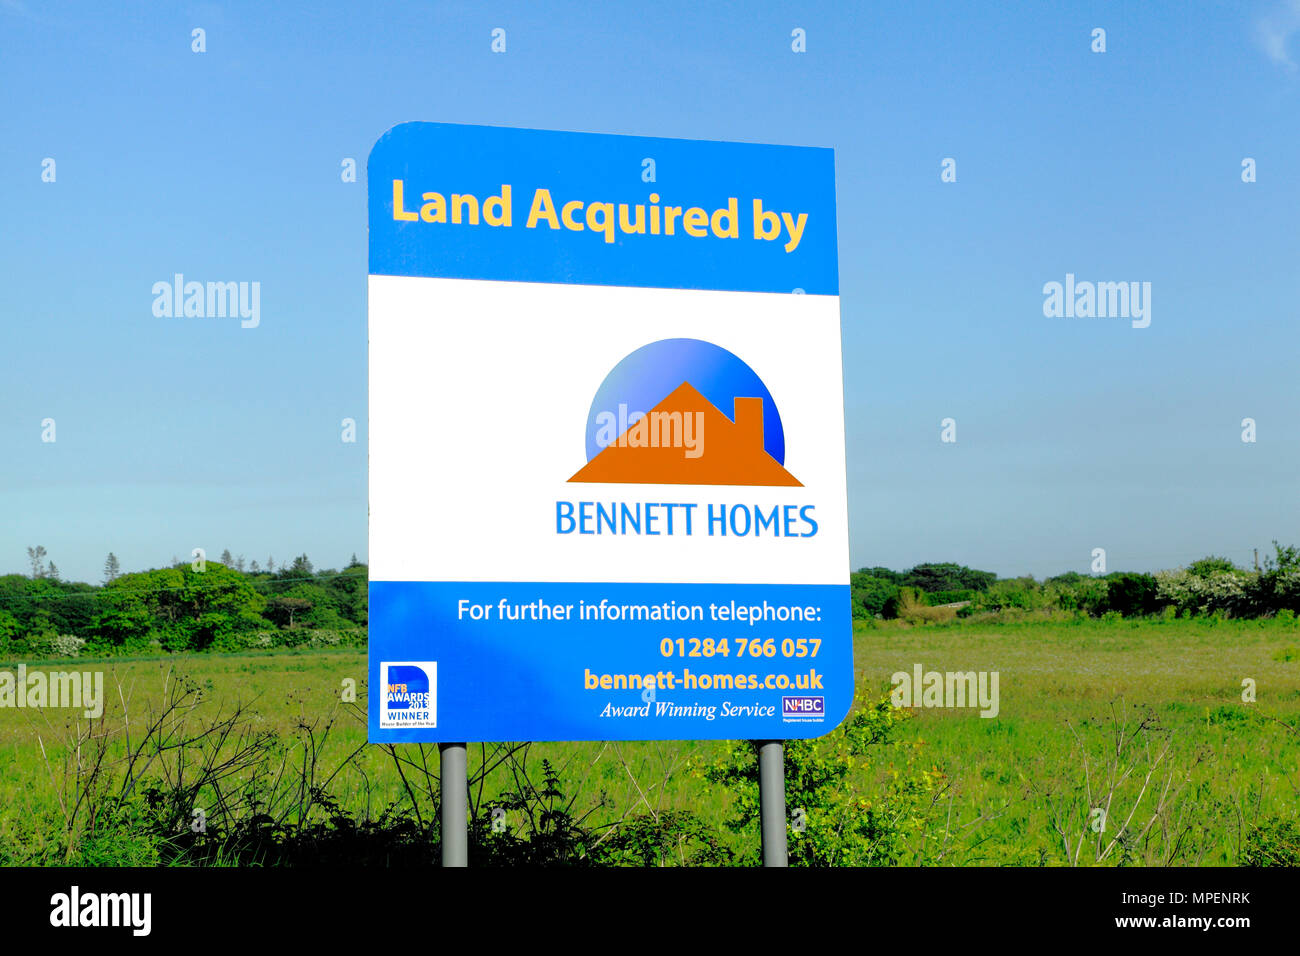 Bennett Homes, land acquisition, housing development, agricultural land, Hunstanton, sign, Norfolk, UK - Stock Image